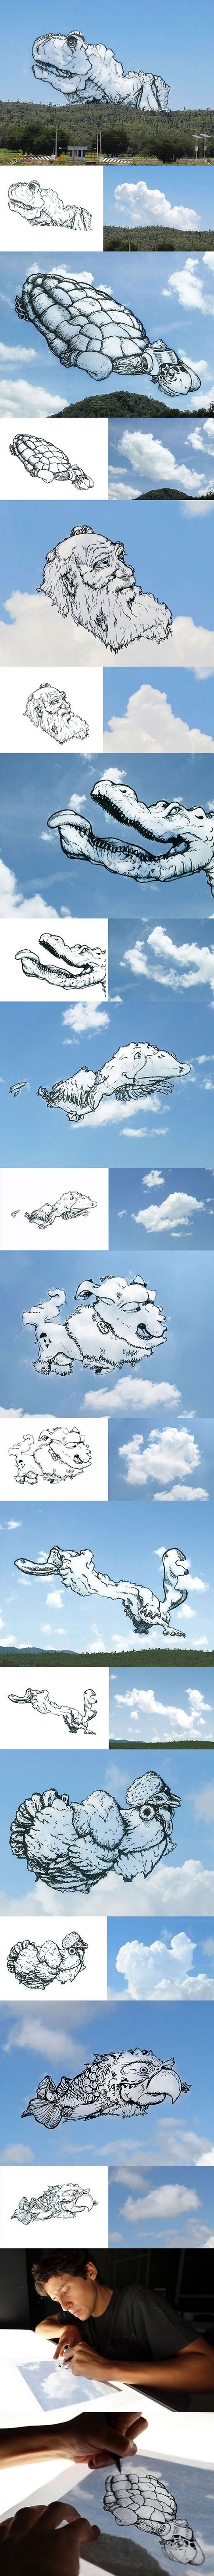 Artist Converts Clouds Into Illustrations